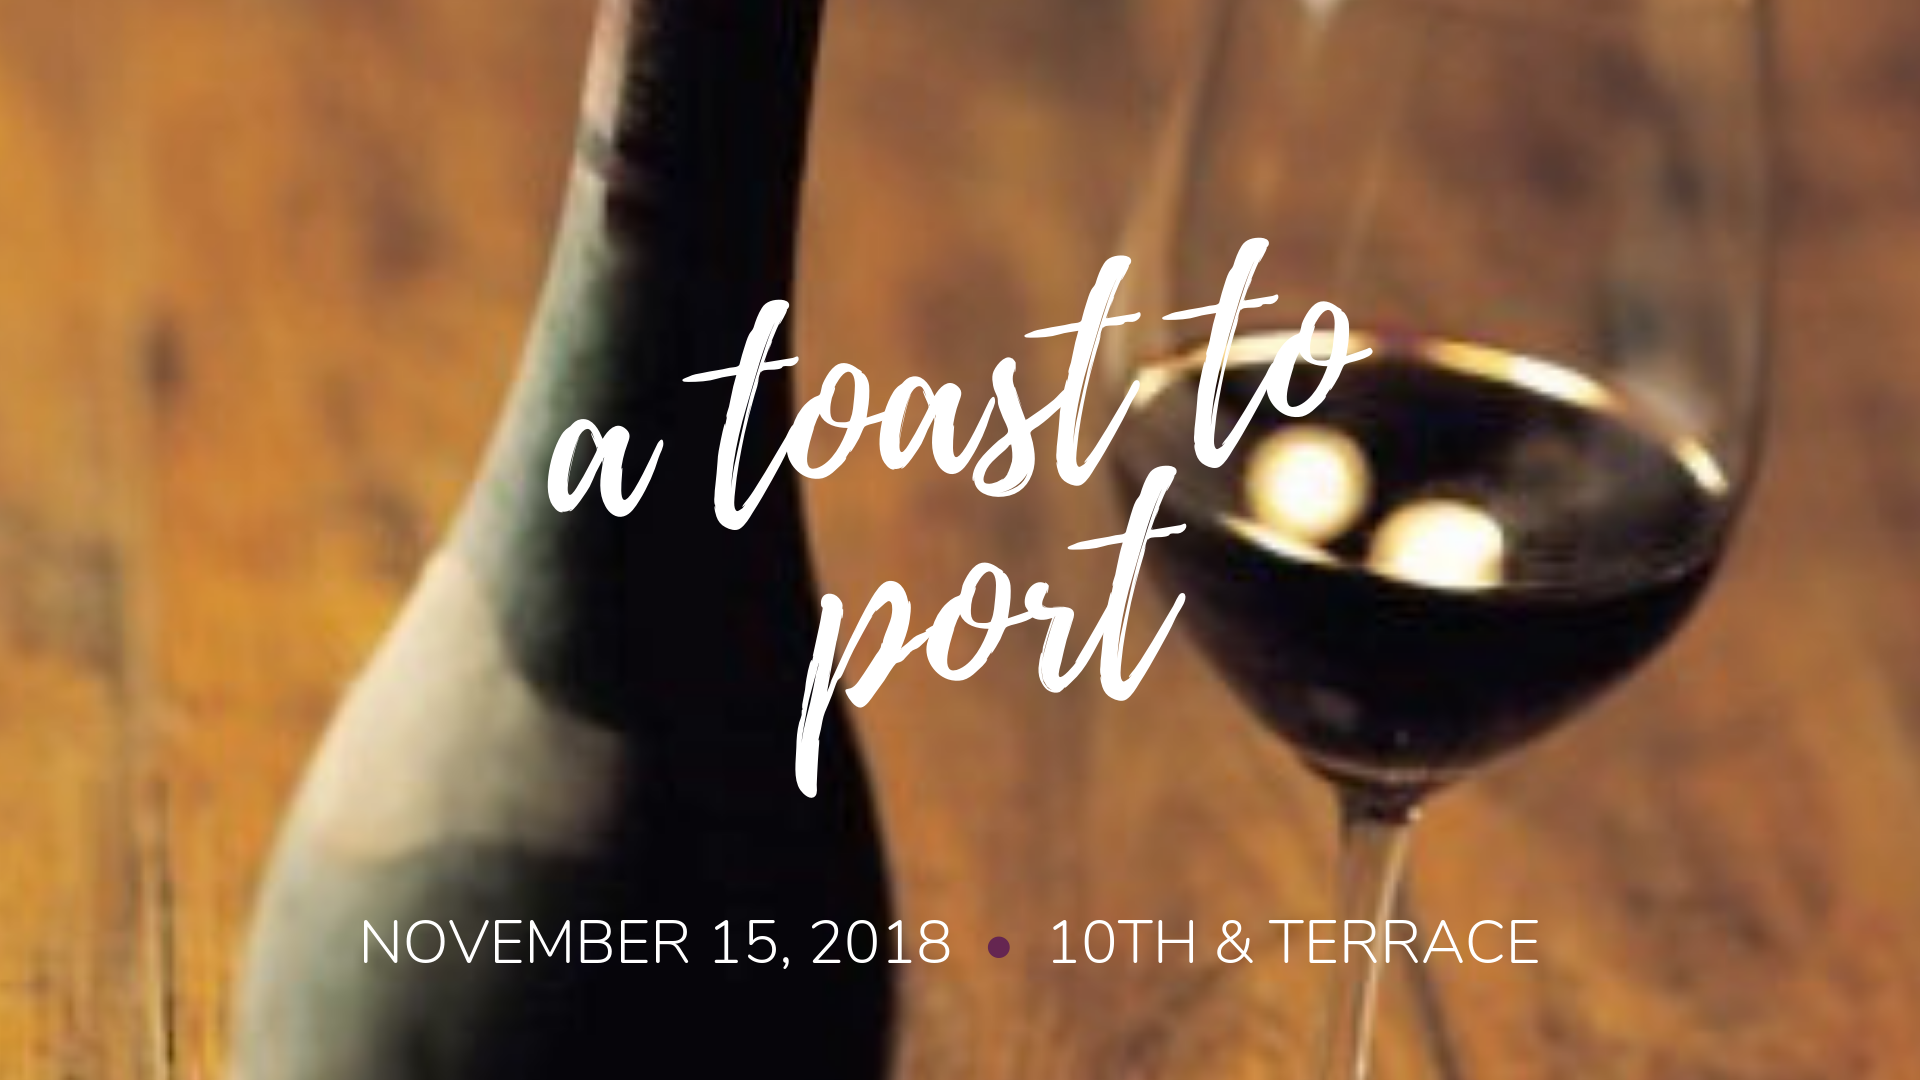 A Toast to Port - Wine Tasting - November 2018 - Residence Inn Raleigh Downtown